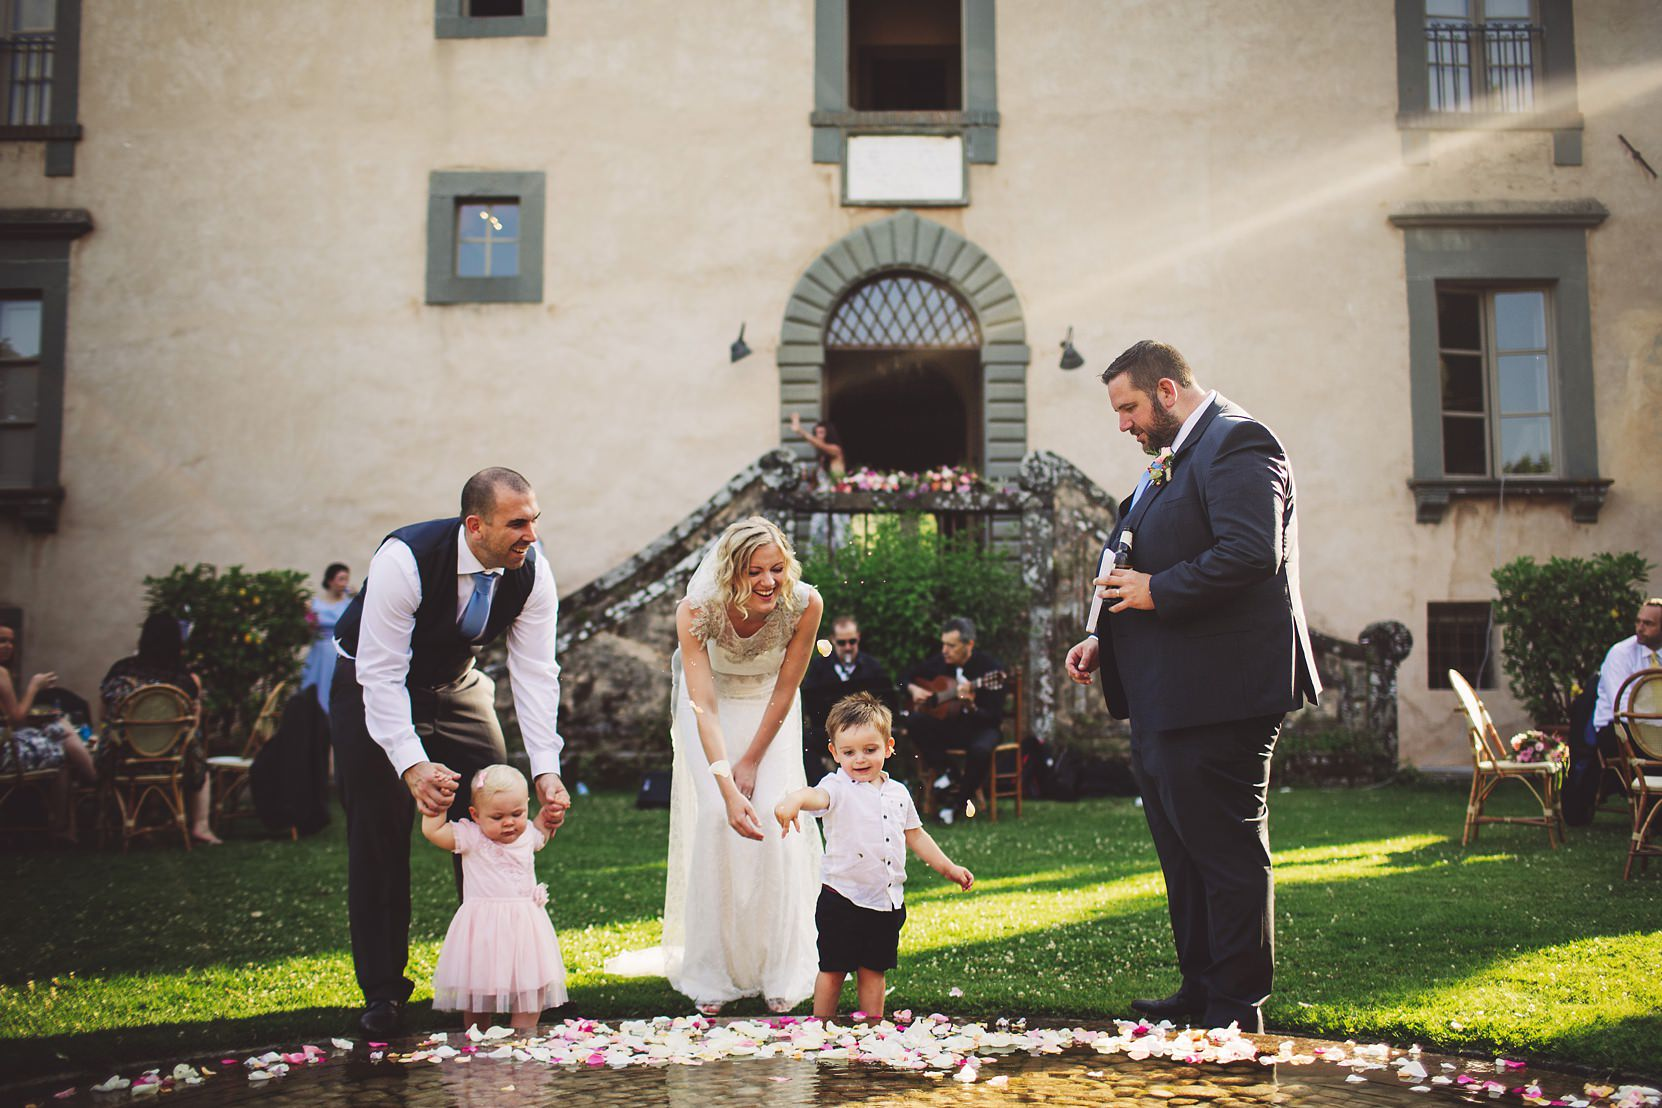 Wedding in Lucca, Tuscany